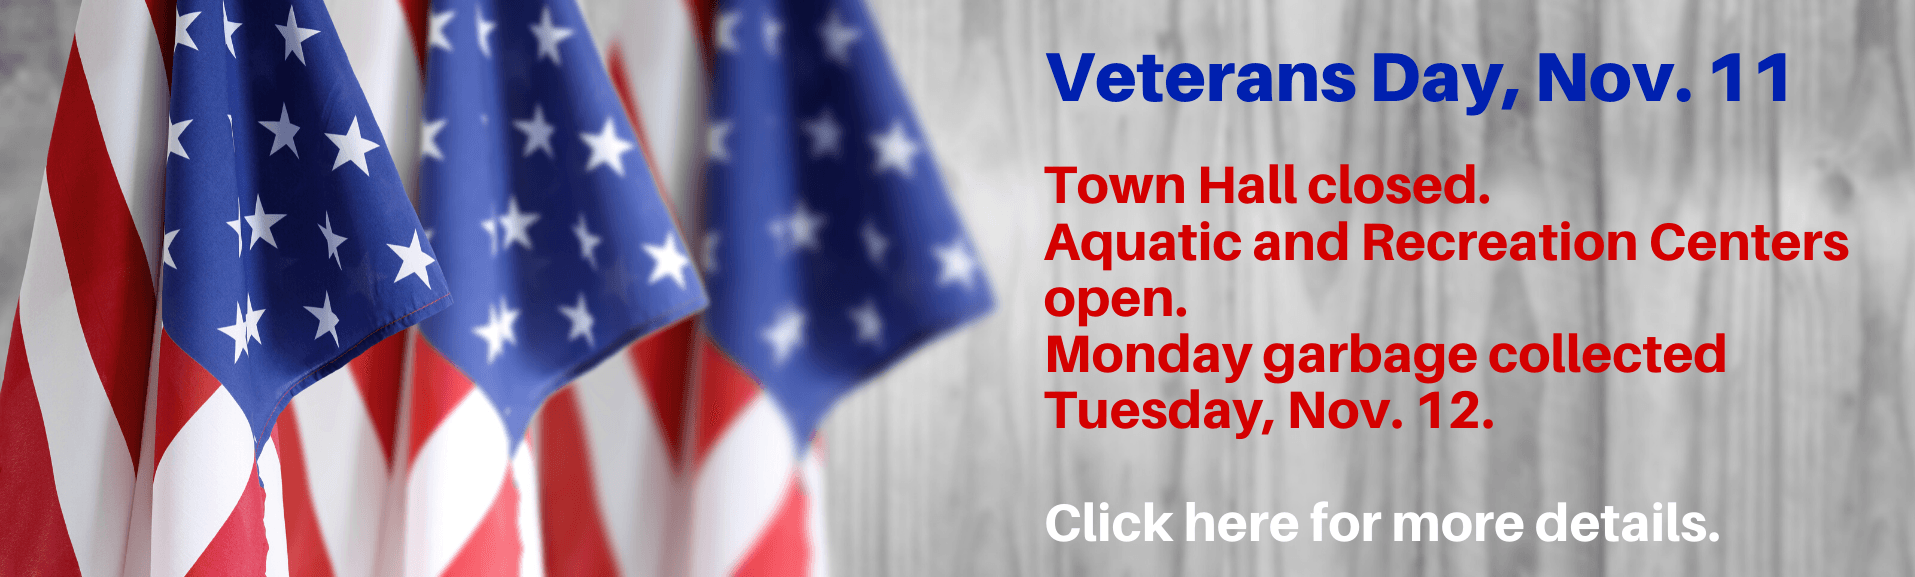 Veterans Day, Nov. 11, Town Hall will be closed. Recreation and Aquatic Centers open. Click for more